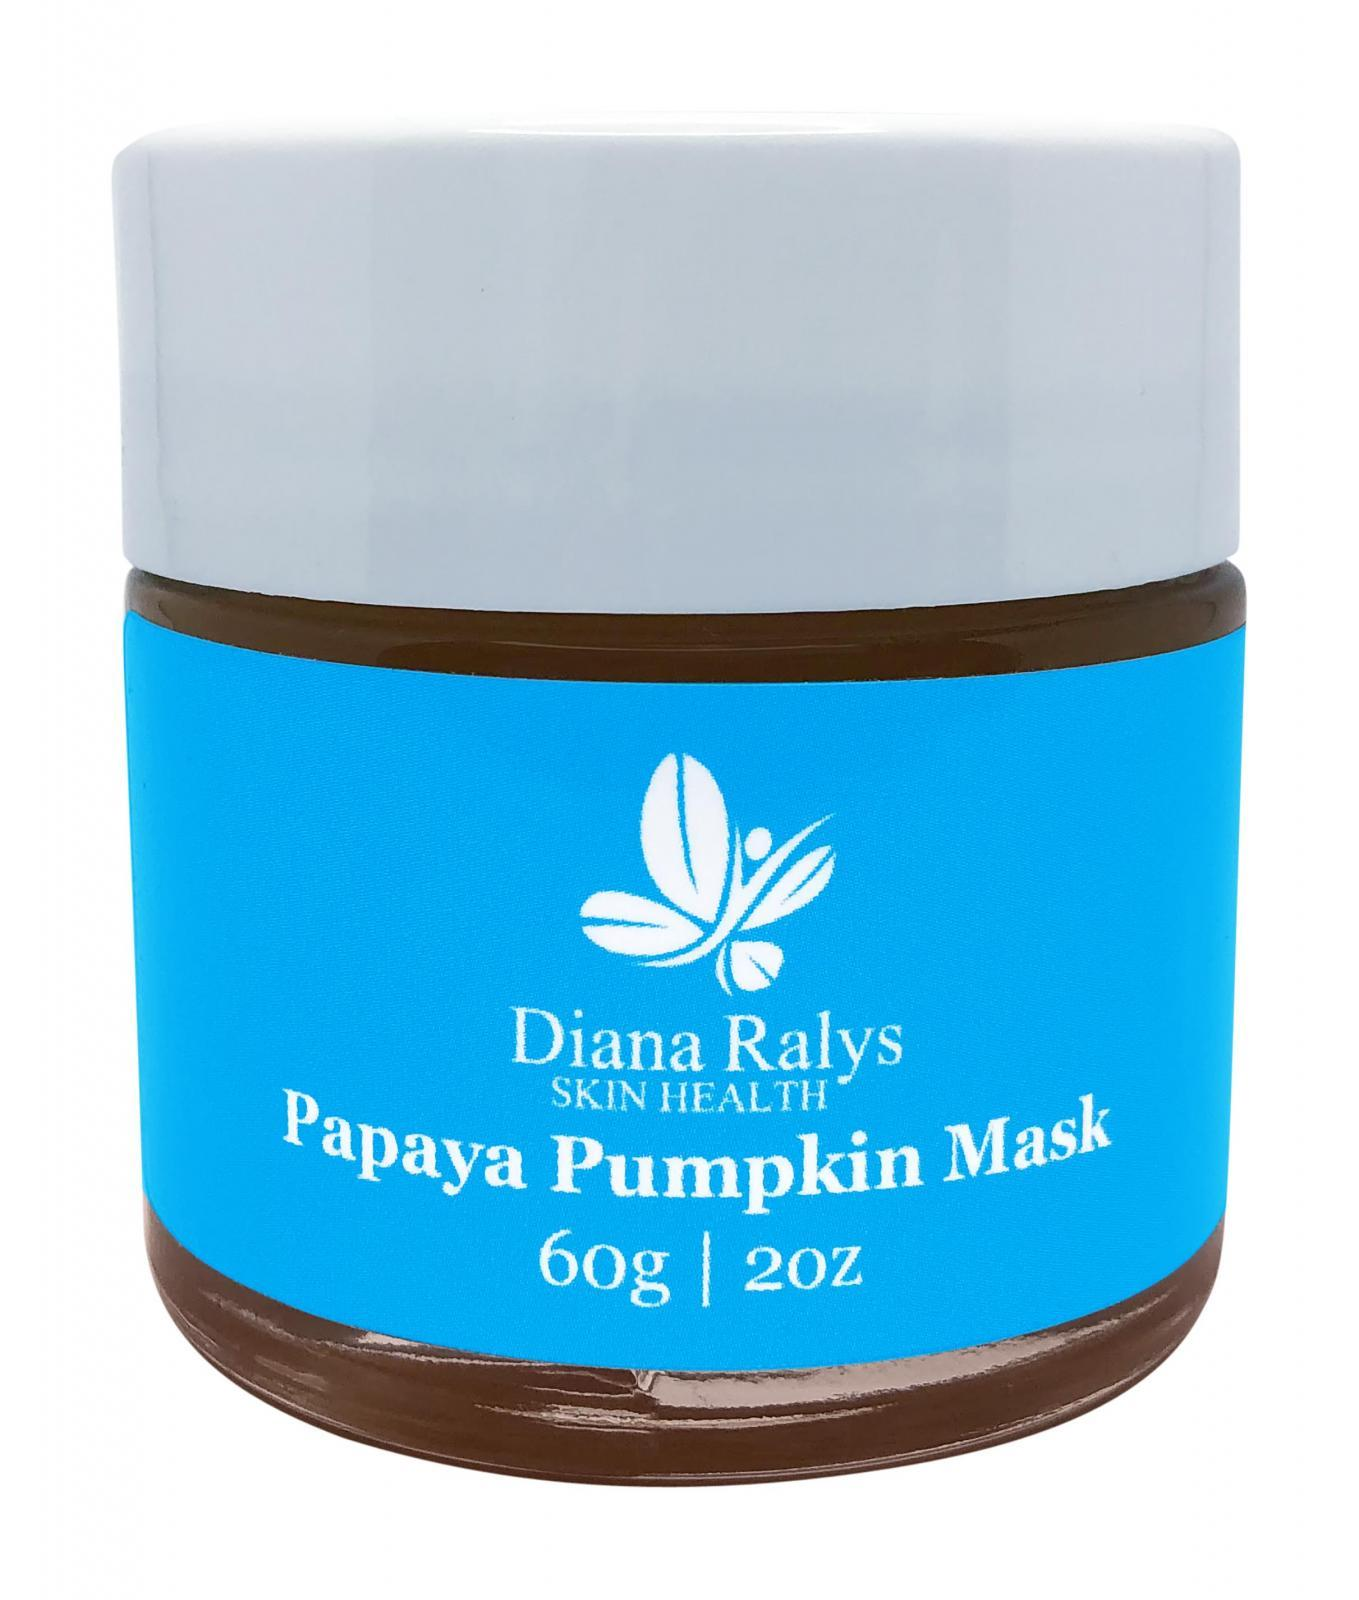 Papaya Pumpkin Mask